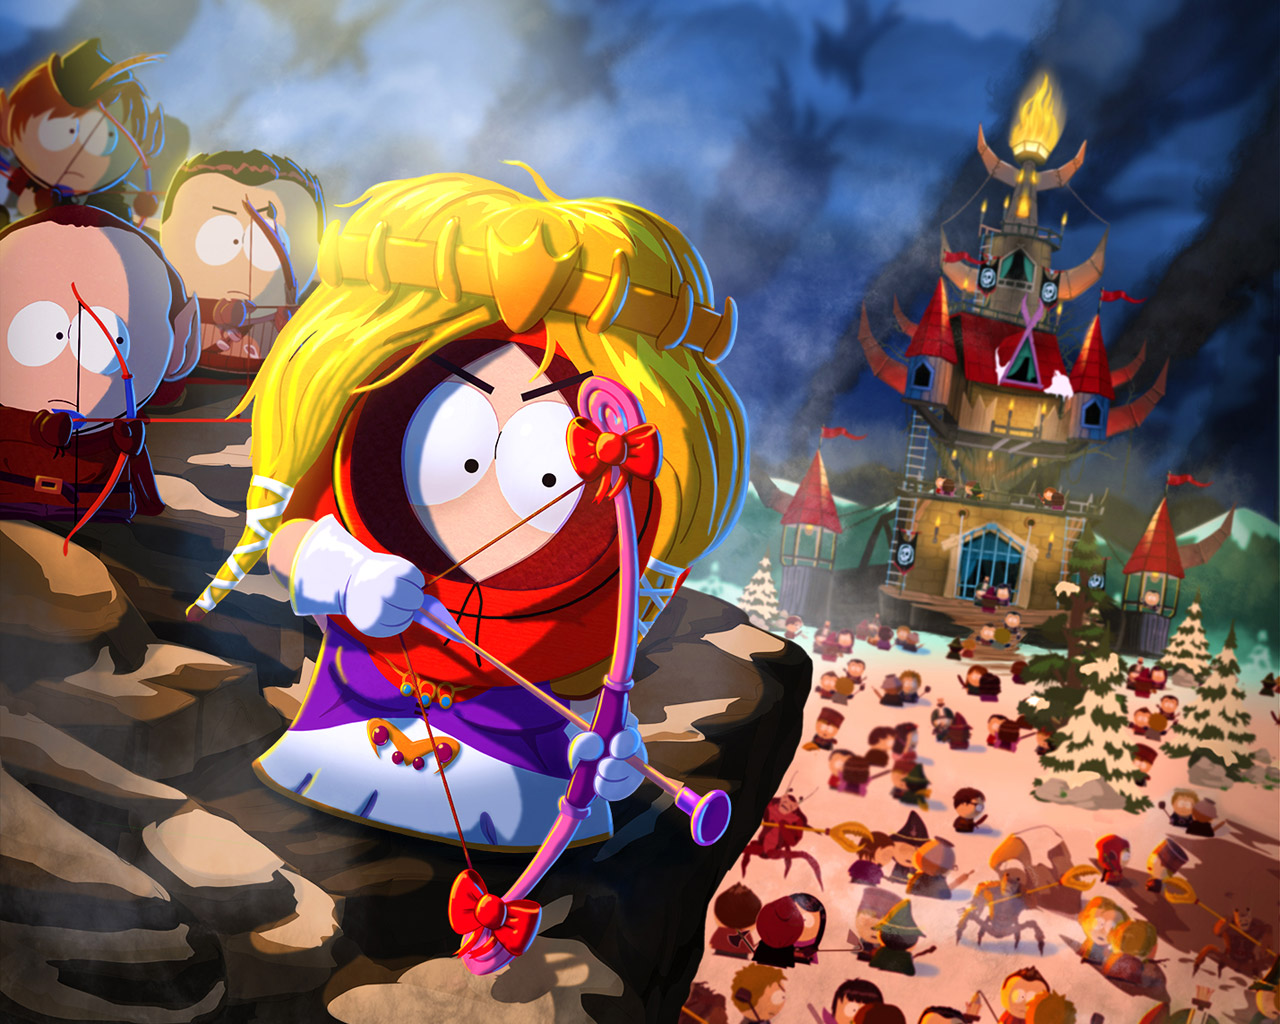 Free South Park: The Stick of Truth Wallpaper in 1280x1024